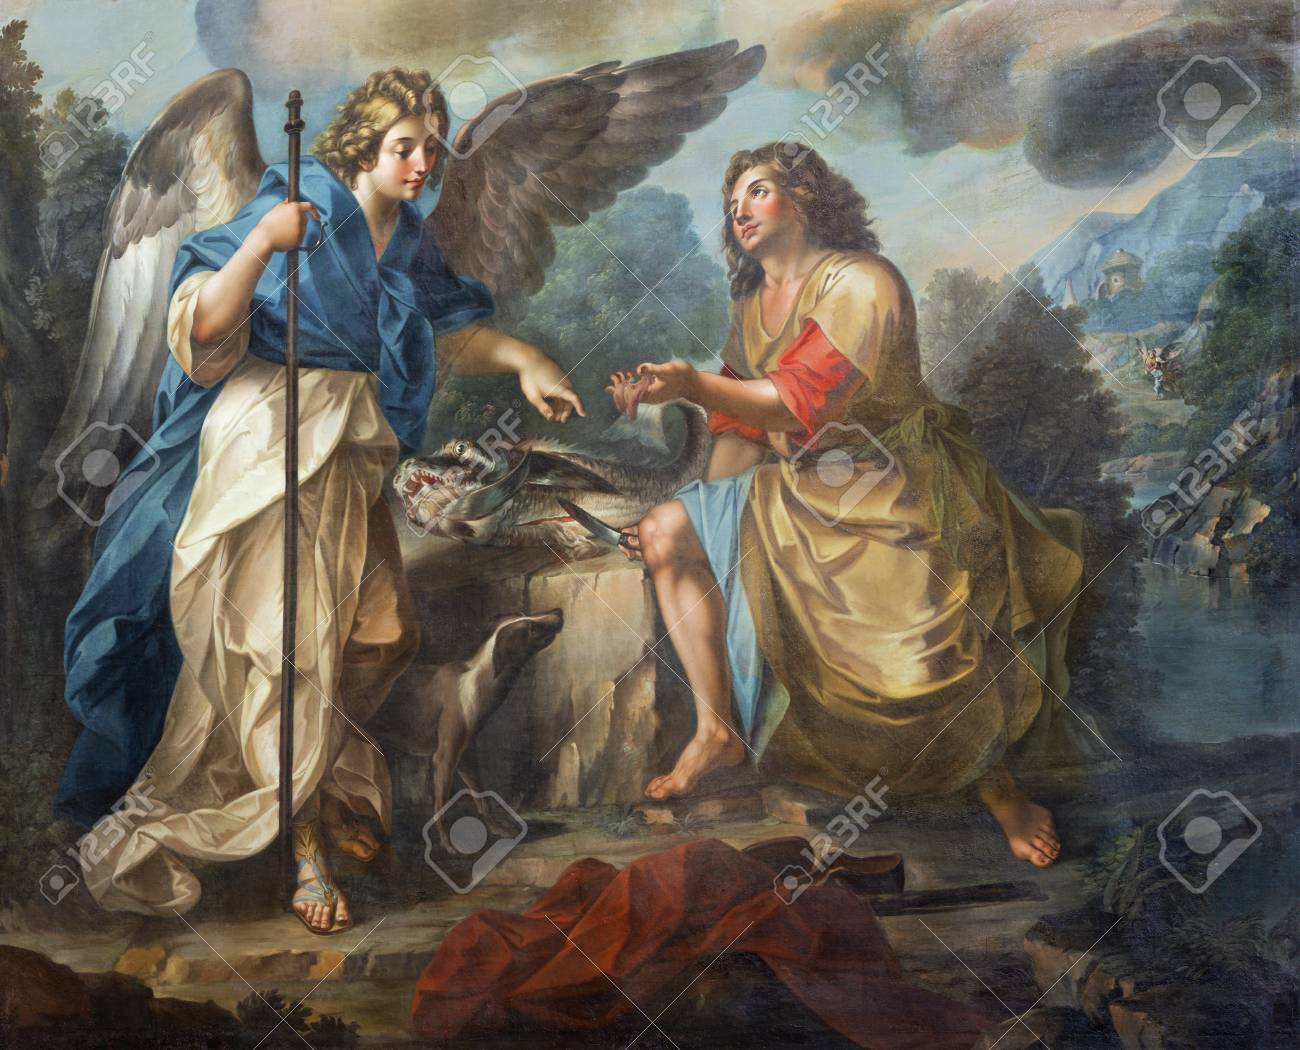 CATANIA, ITALY - APRIL 7, 2018: The detail of painting of Tobias and archangel Raphael in church Chiesa di San Benedetto by Matteo Desiderato (1780). - 133113068